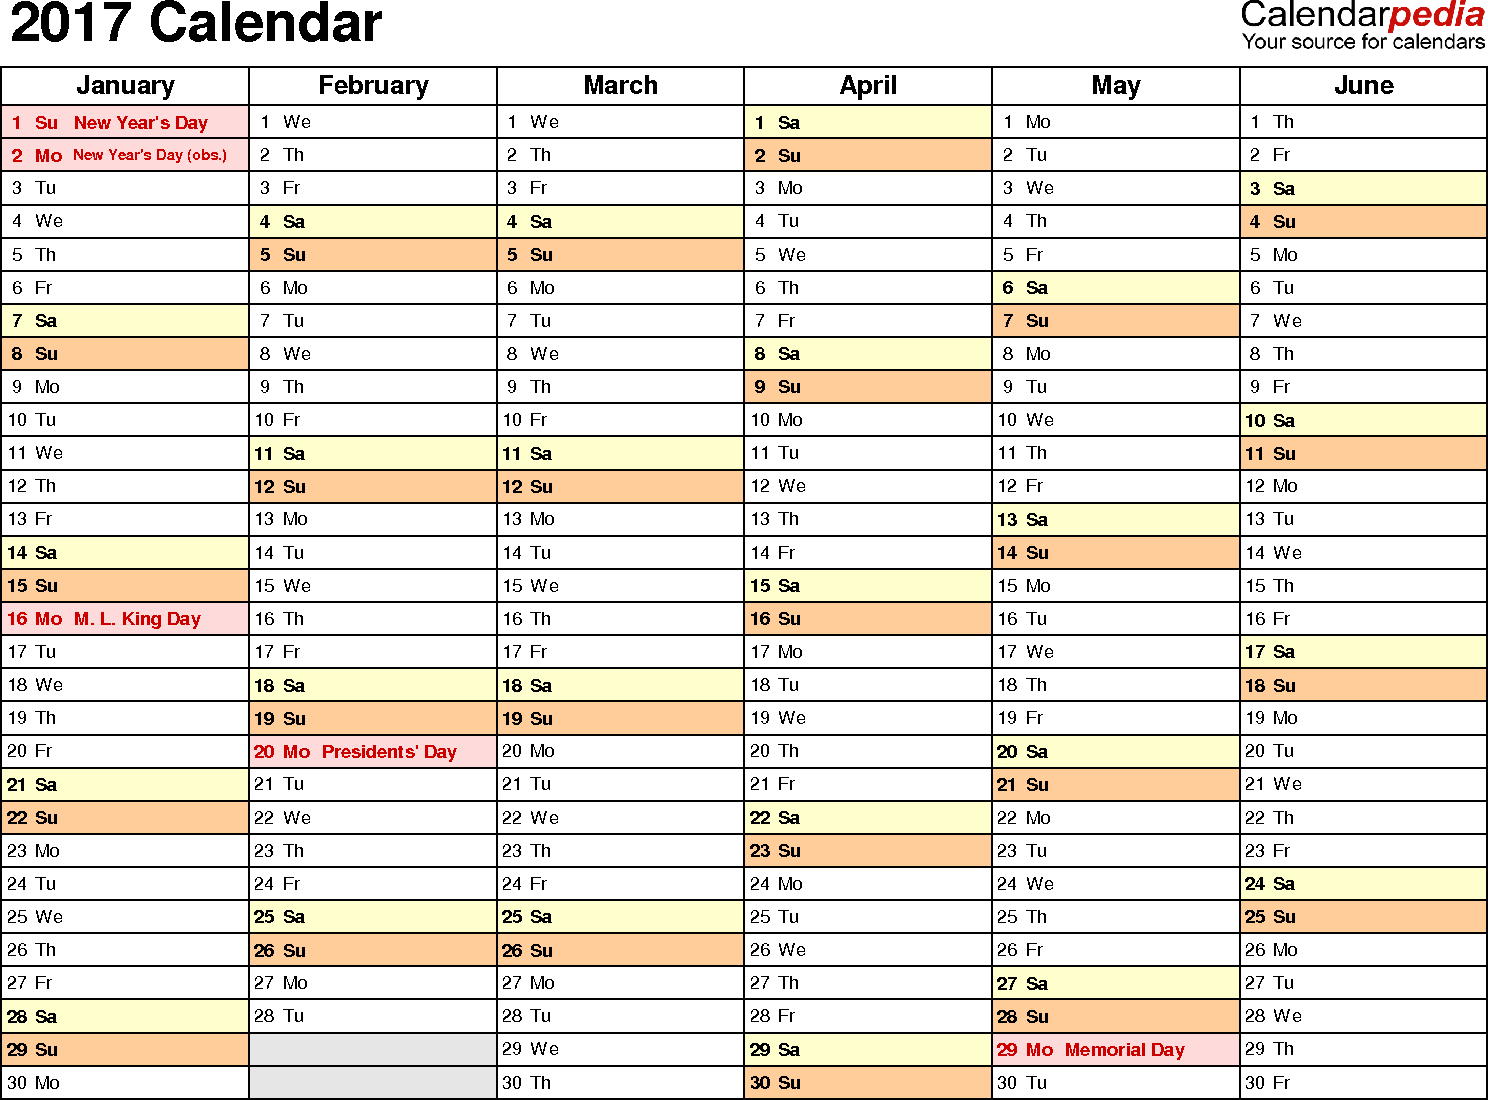 Ediblewildsus  Gorgeous  Calendar  Download  Free Printable Excel Templates Xls With Handsome Template   Calendar For Excel Months Horizontally  Pages Landscape Orientation With Astounding How To Do If Formula In Excel Also How To Use Count Formula In Excel In Addition Org Chart From Excel And Crack Excel Vba Password As Well As Us Population By Year Excel Additionally Excel If Function Multiple From Calendarpediacom With Ediblewildsus  Handsome  Calendar  Download  Free Printable Excel Templates Xls With Astounding Template   Calendar For Excel Months Horizontally  Pages Landscape Orientation And Gorgeous How To Do If Formula In Excel Also How To Use Count Formula In Excel In Addition Org Chart From Excel From Calendarpediacom